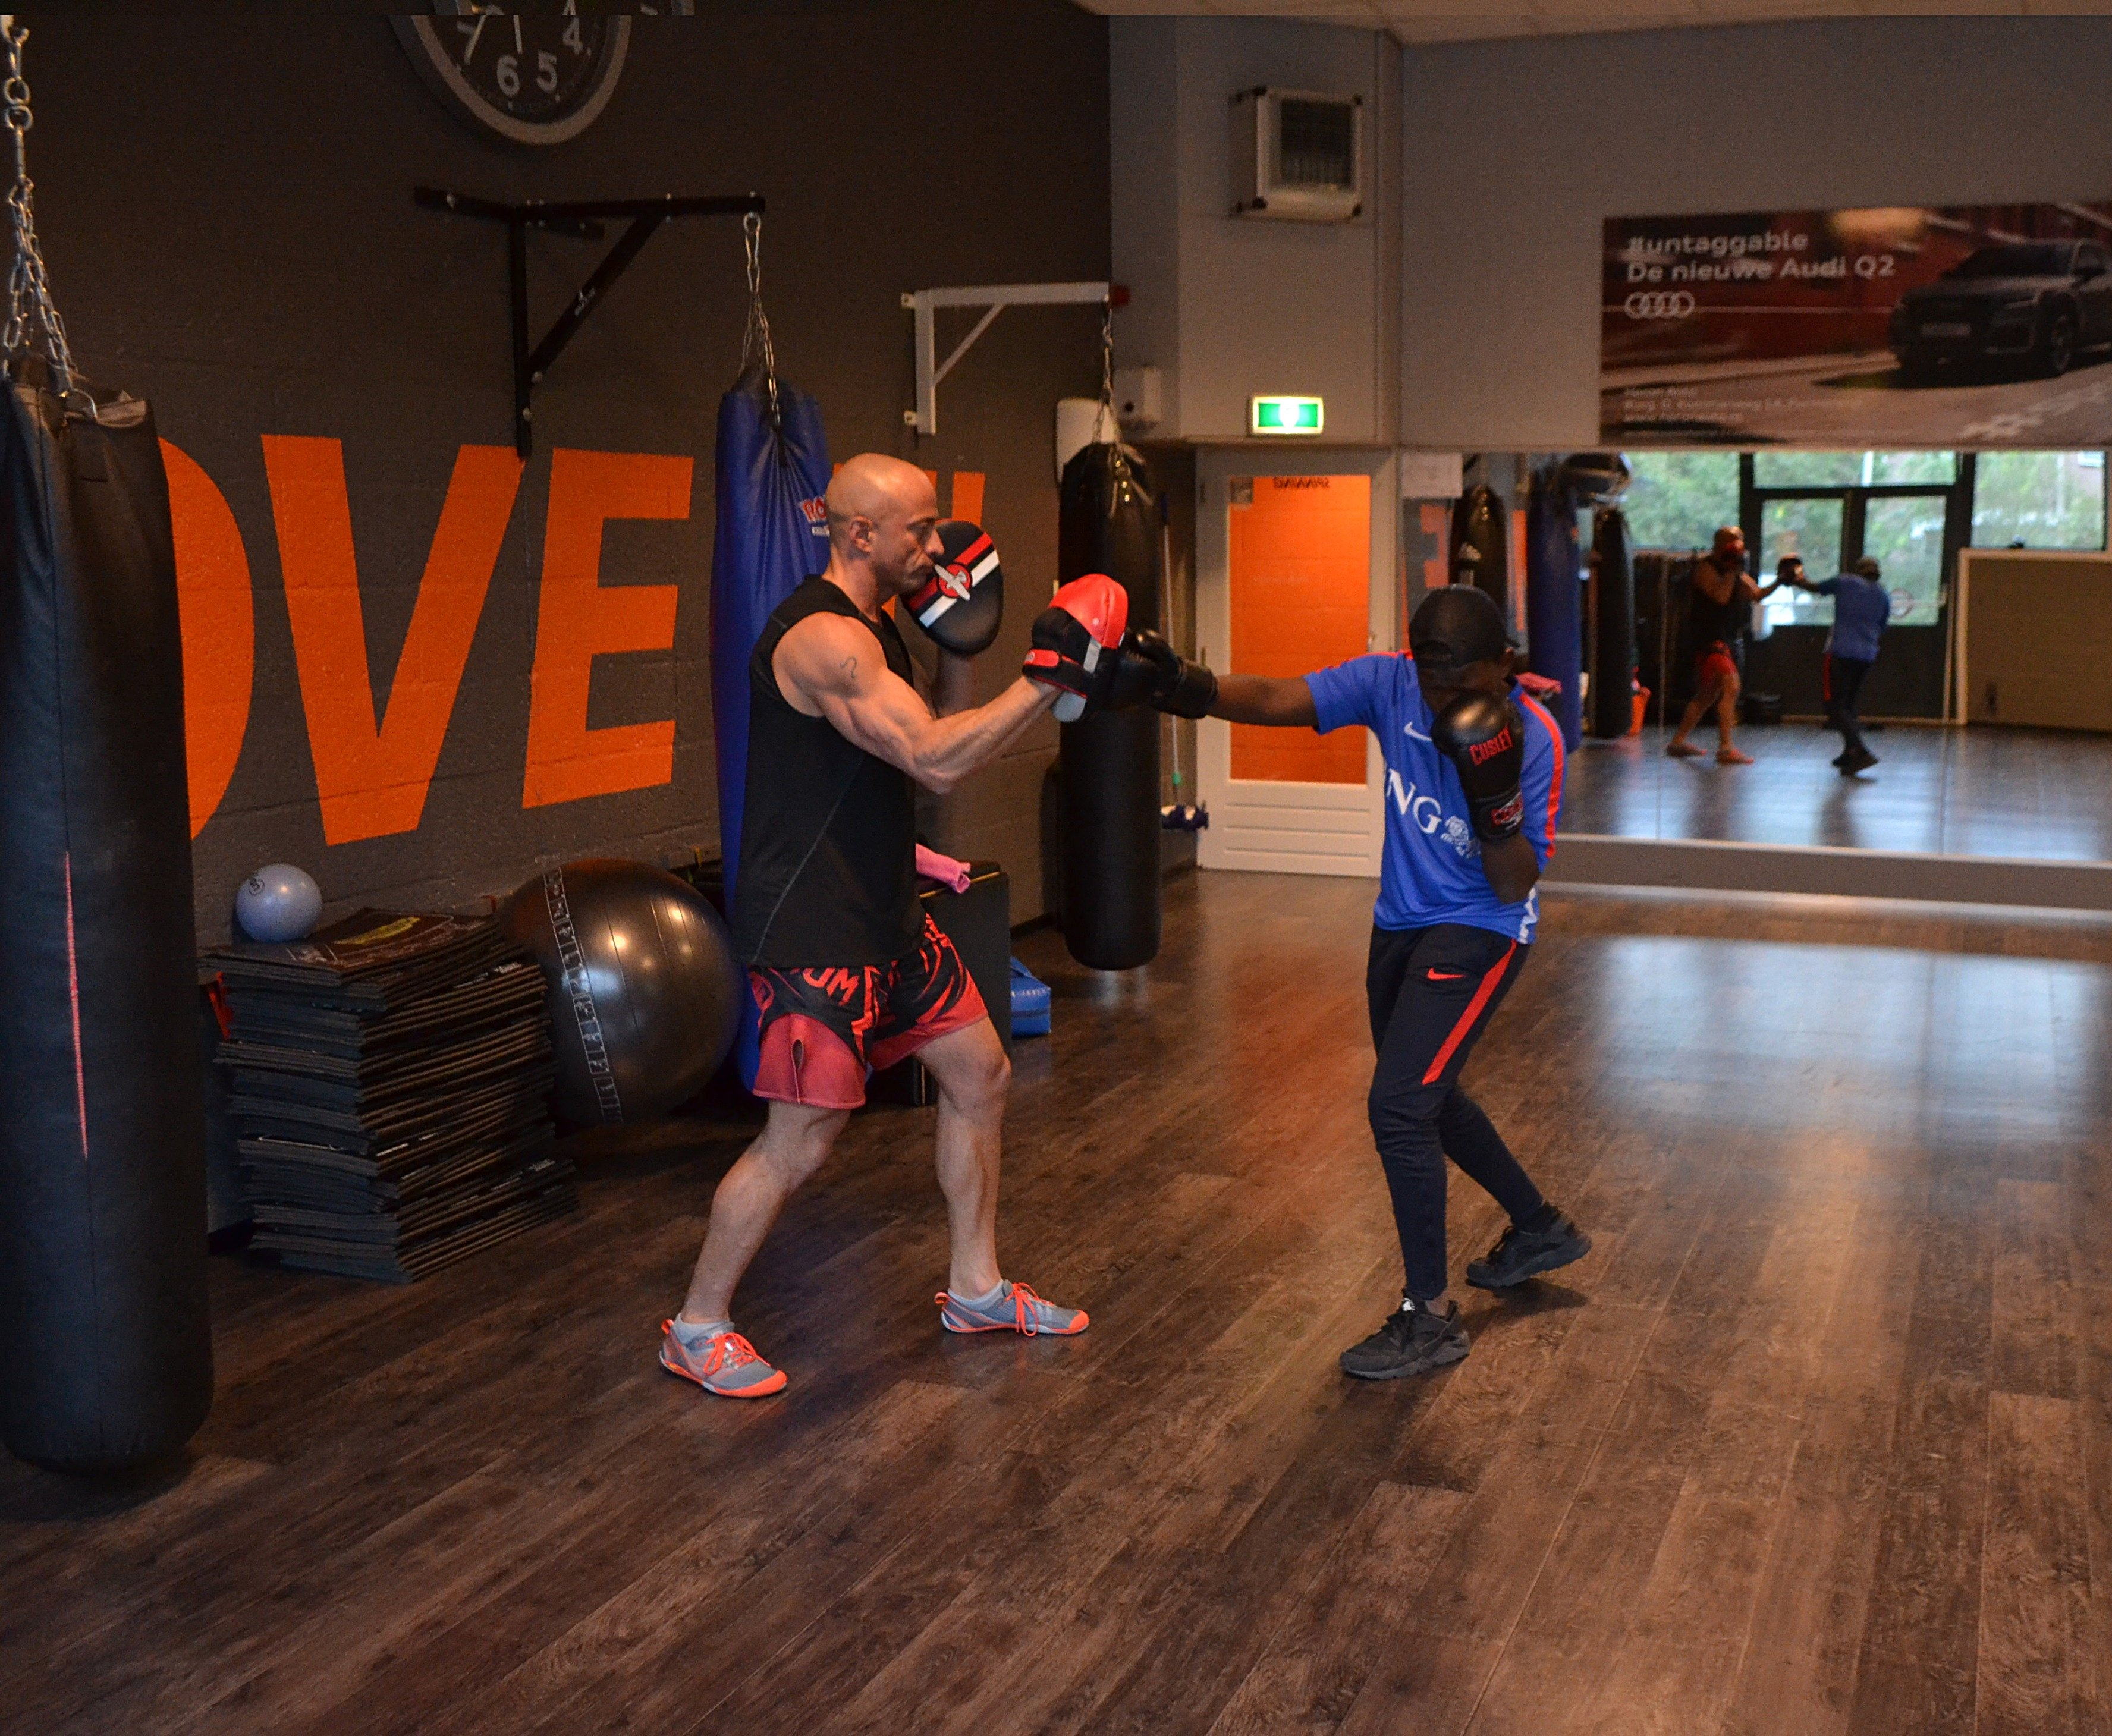 jefitcoach Ray PT kickboksen - jefitcoach.nl